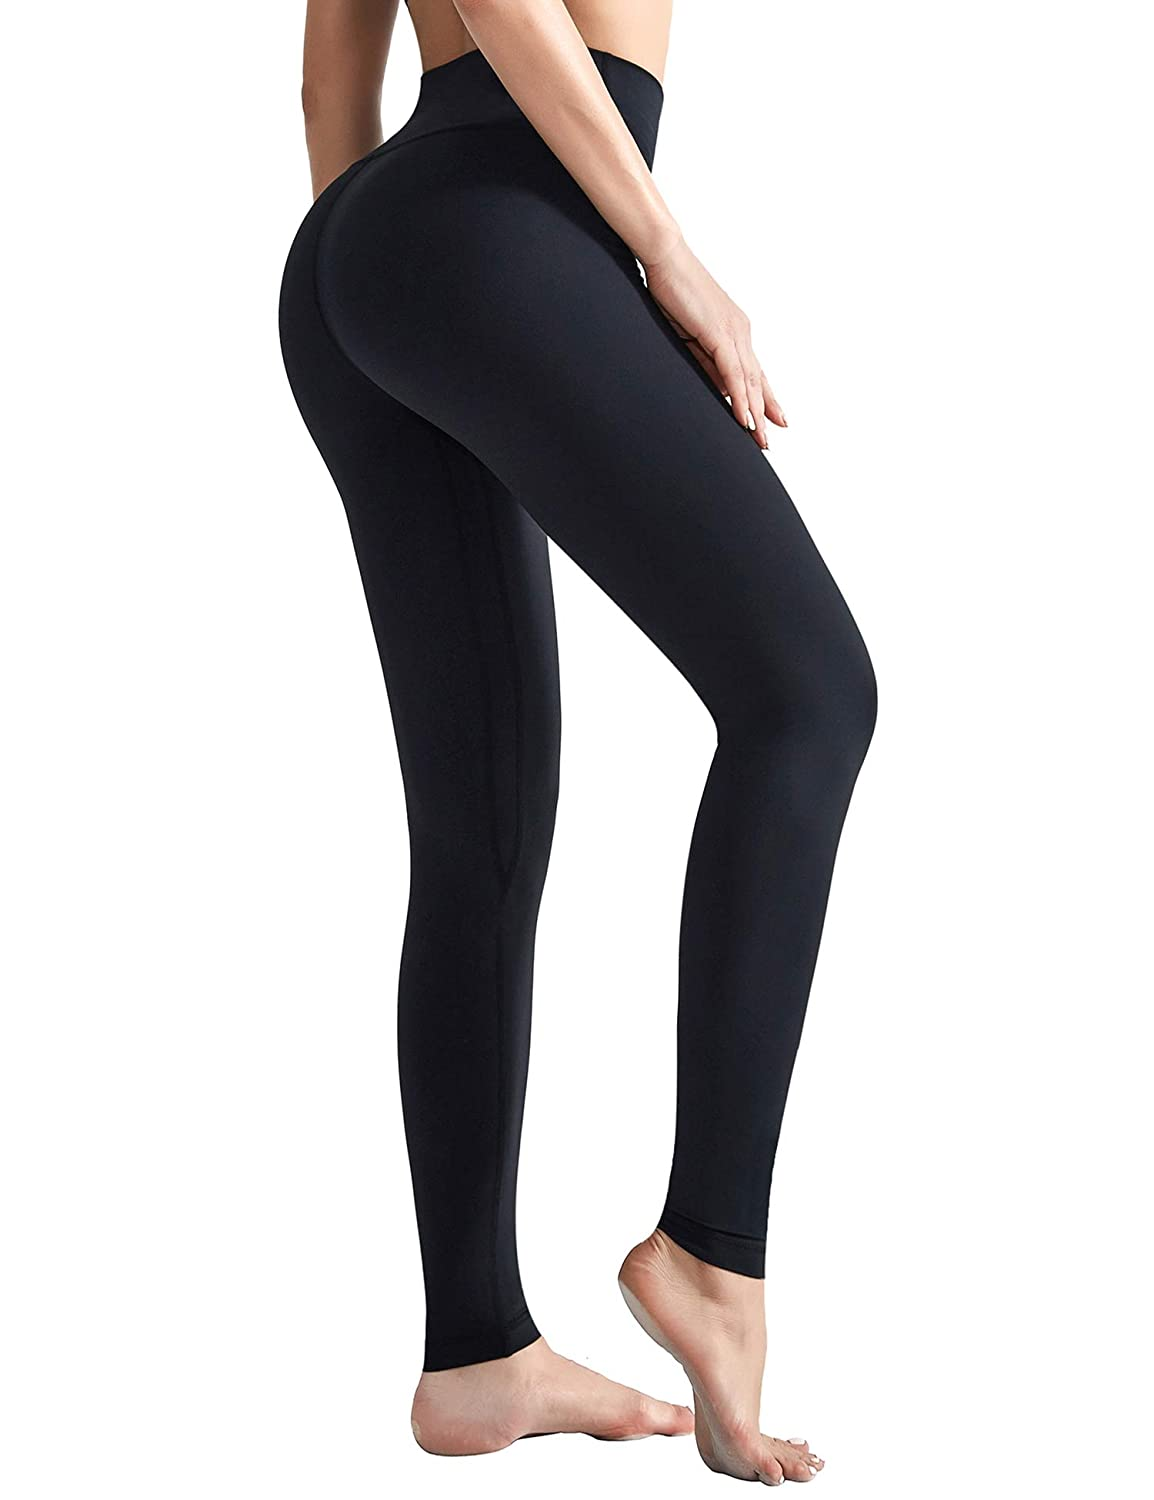 Ultra Soft Compression Workout Running Leggings with Inner Pocket AladdinShare Womens High Waist Yoga Pants